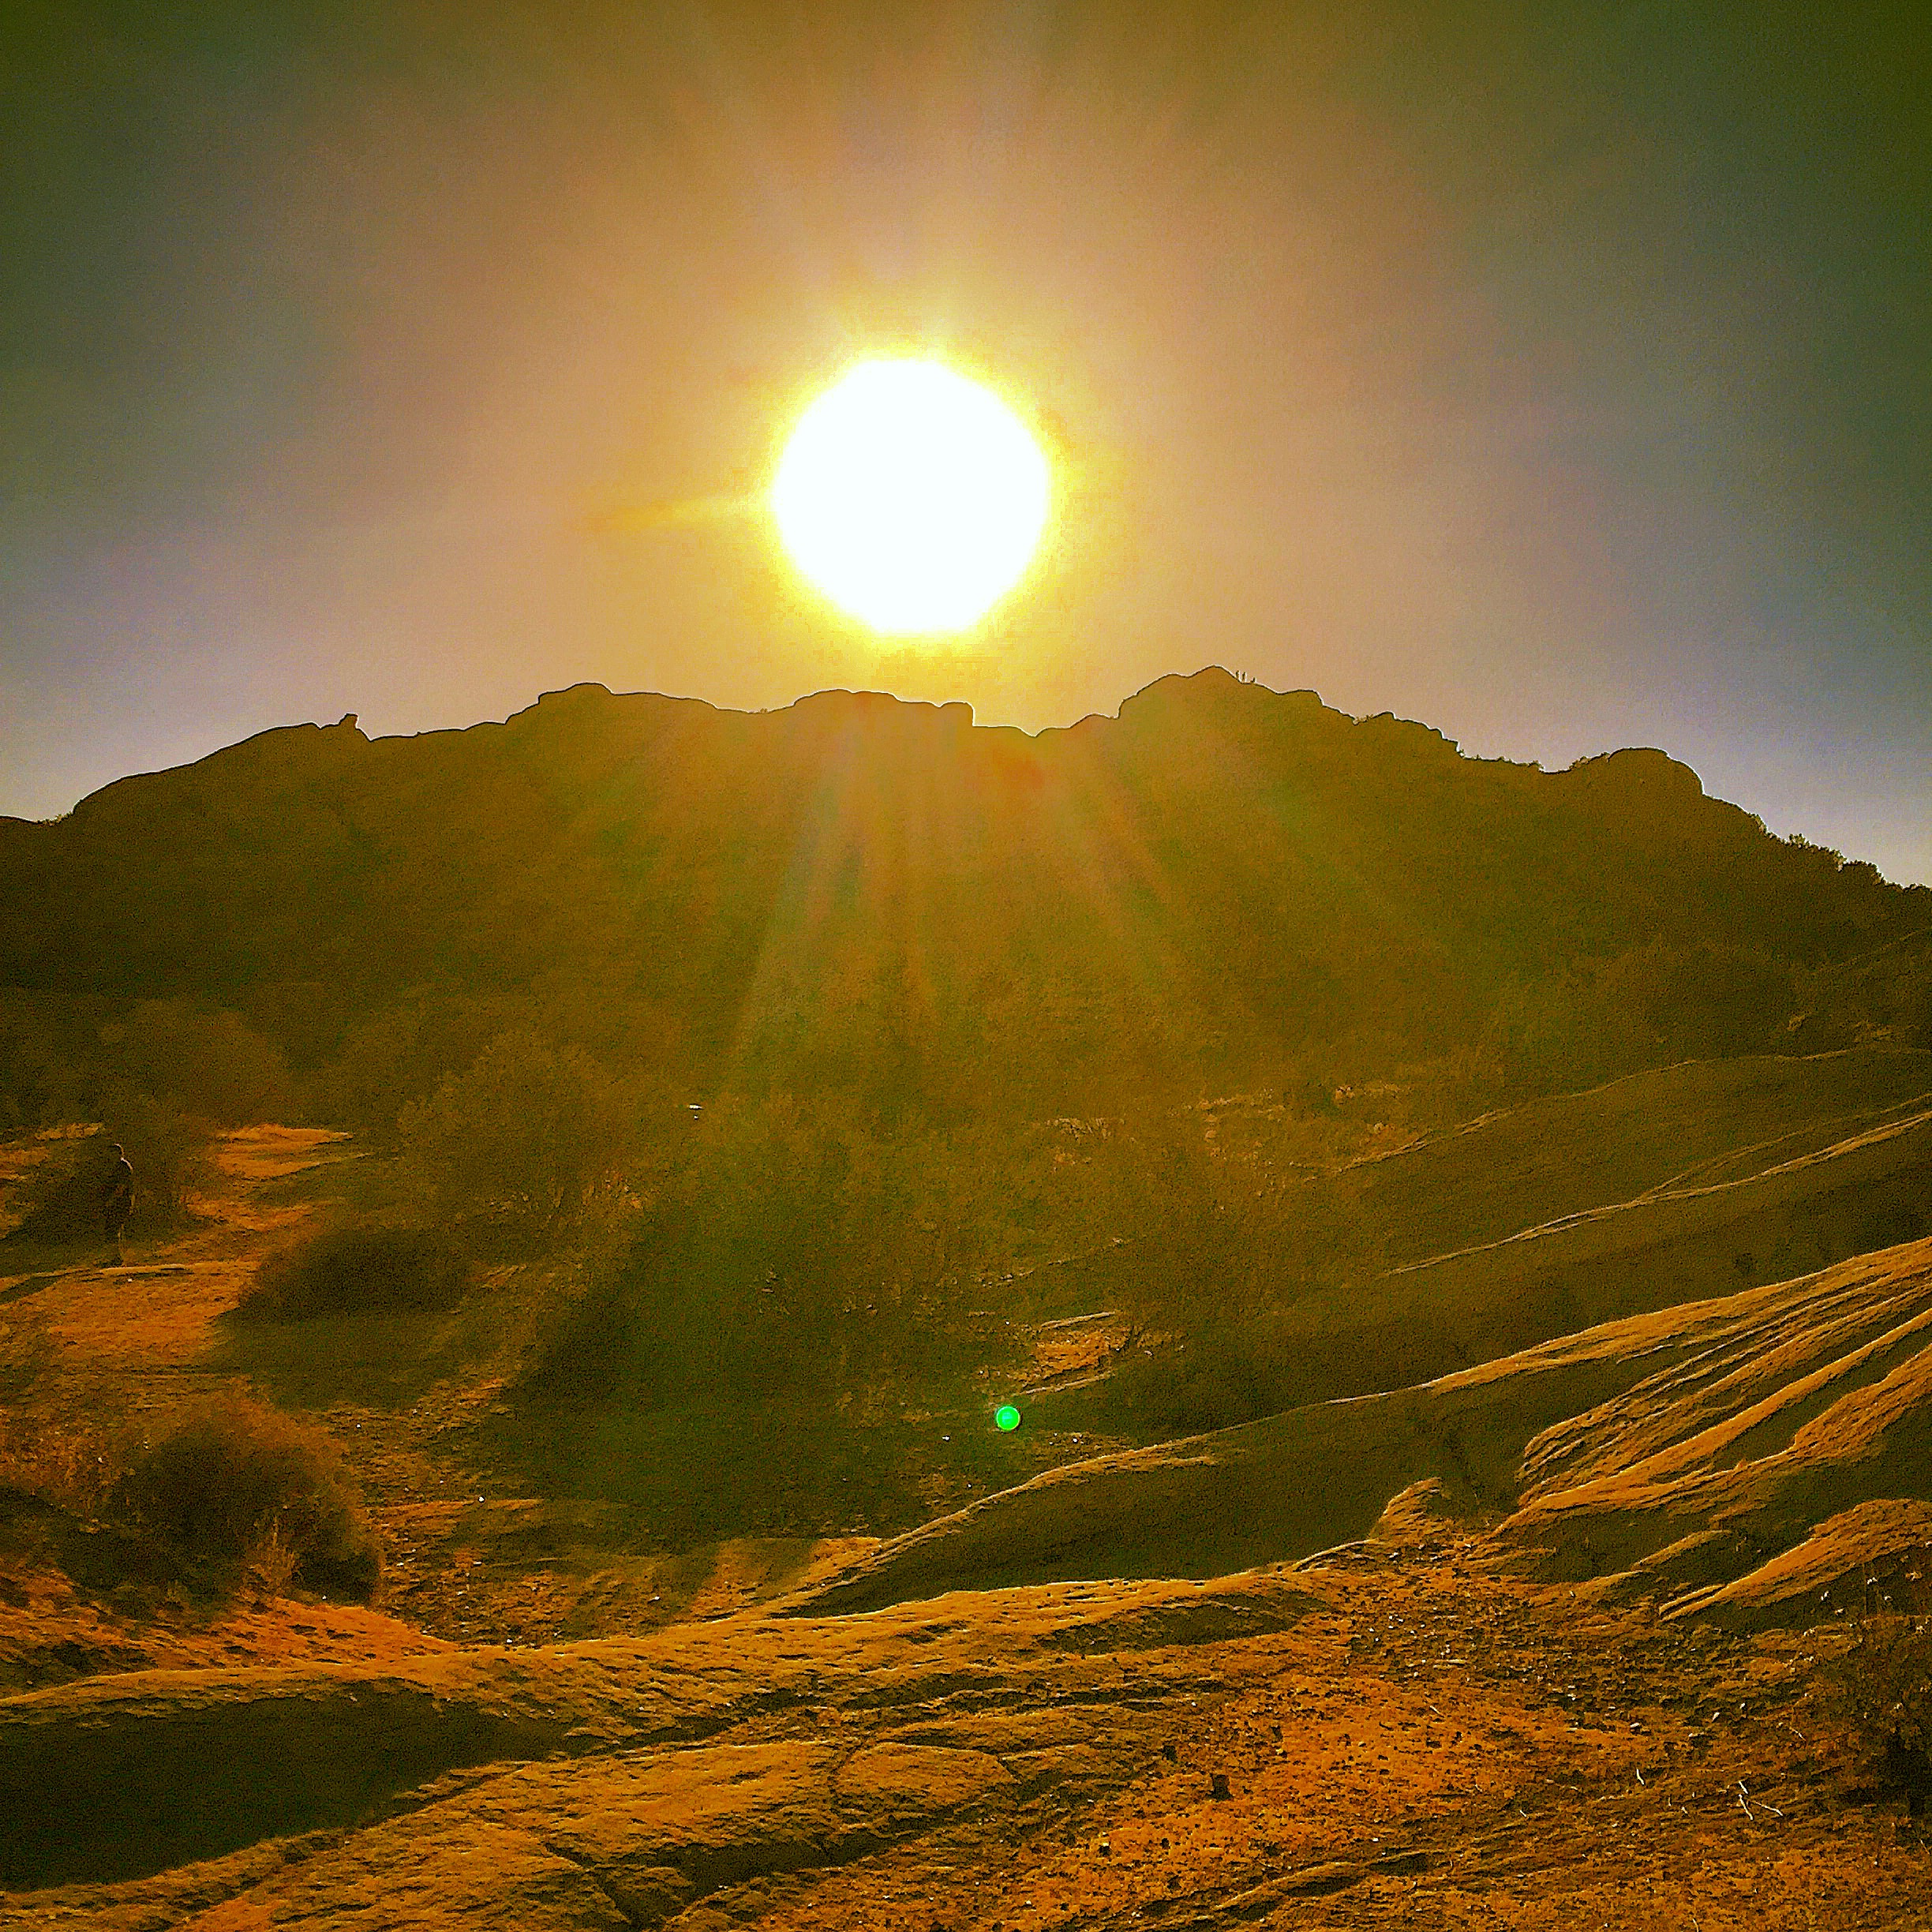 Beautiful Nature Los Angeles: Hidden Valley Of Sunshine, Beauty And Peace (#photos